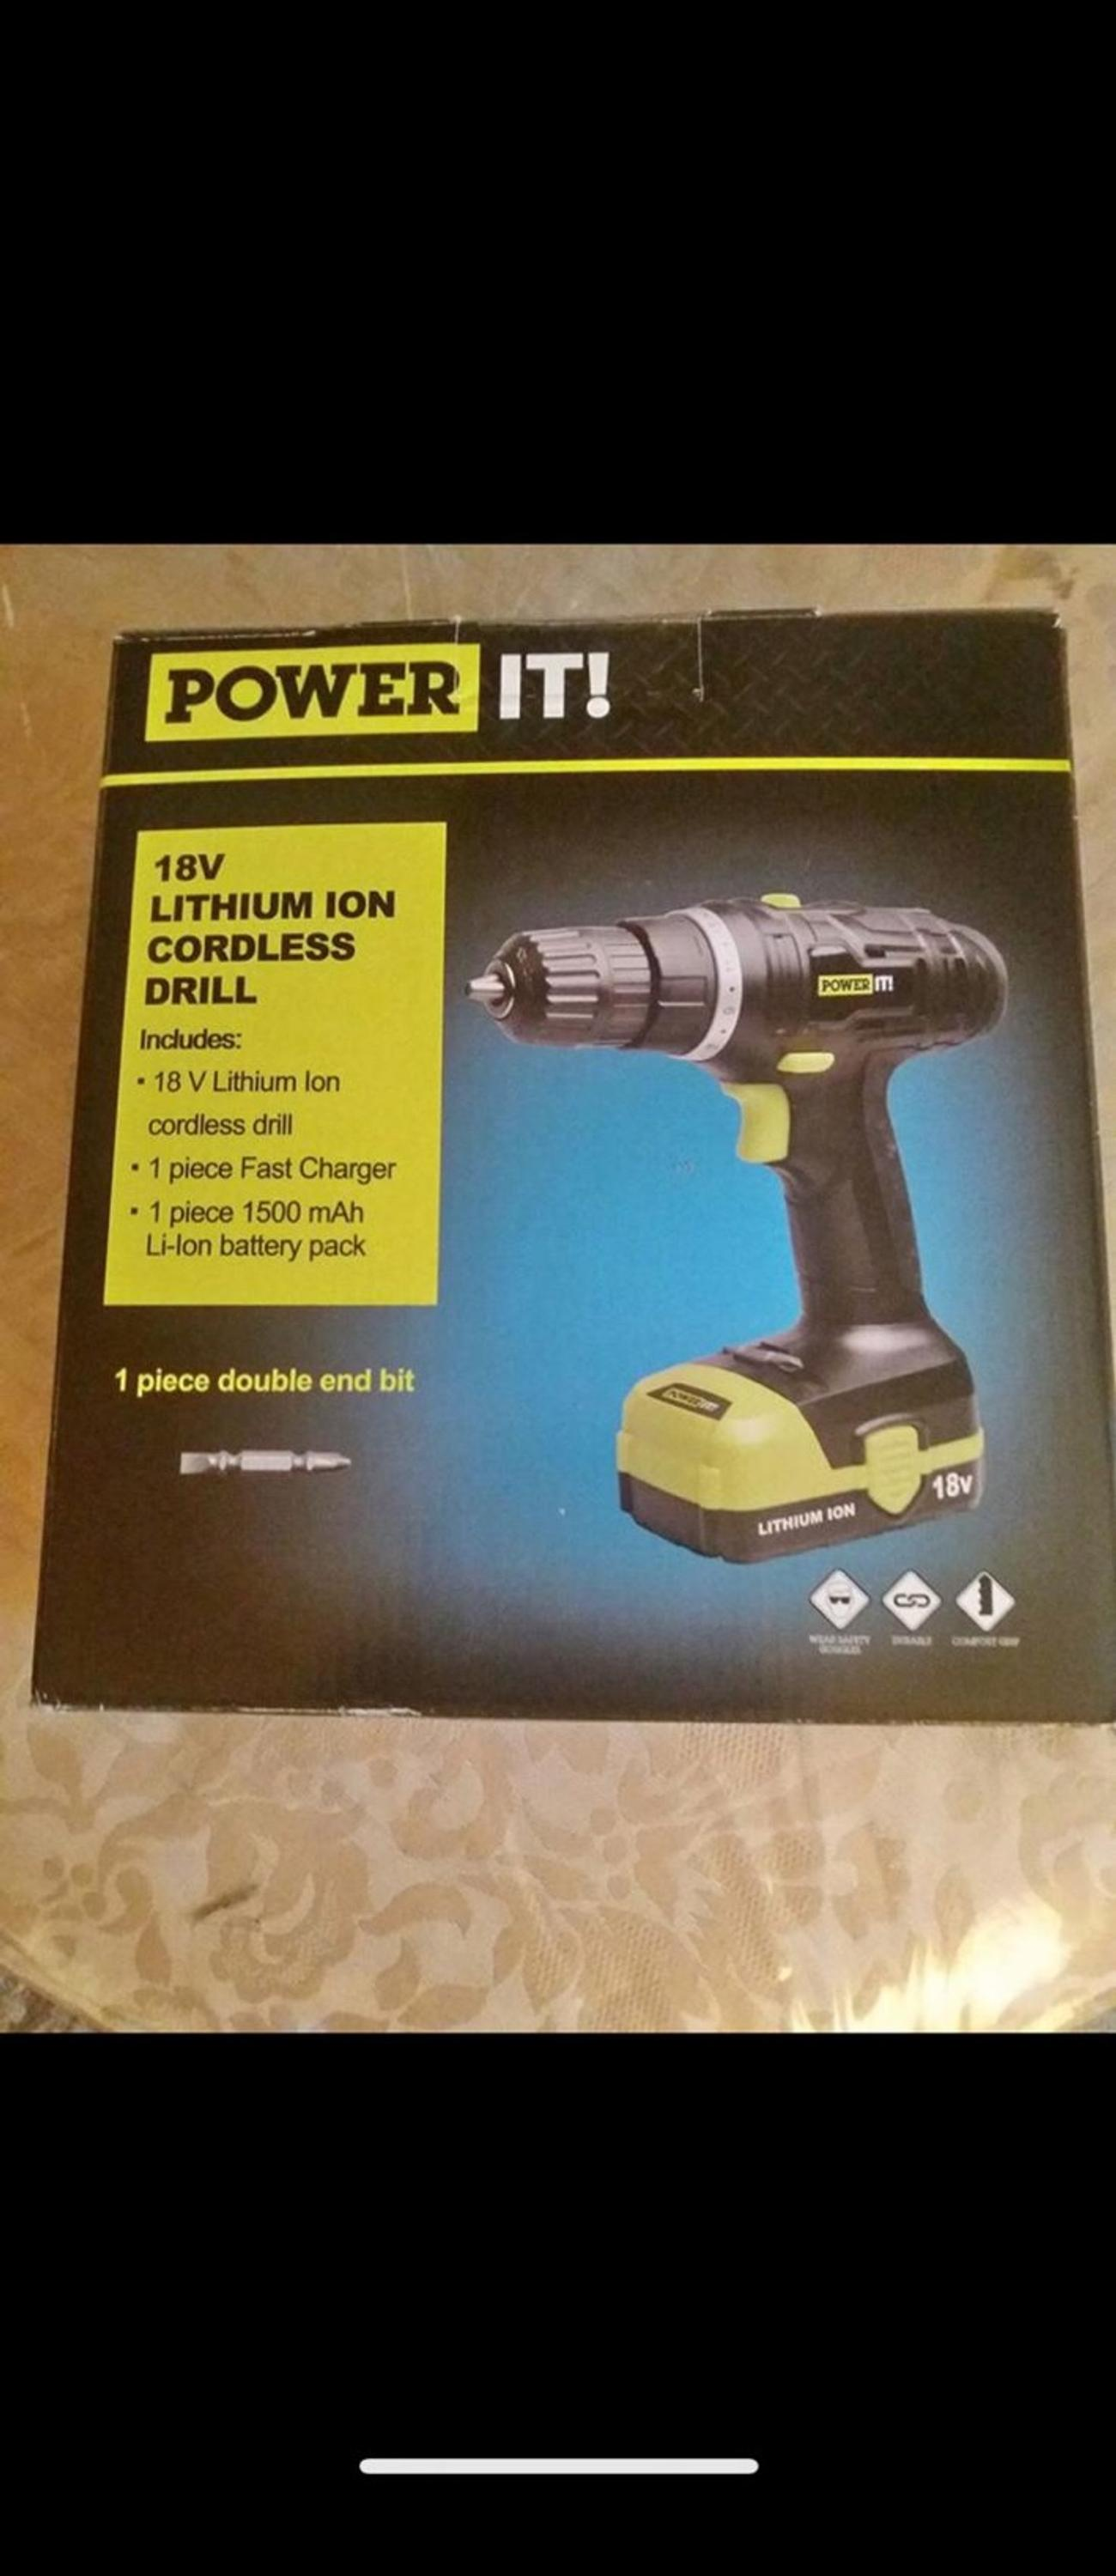 POWER IT! 18V LITHIUM ION CORDLESS DRILL